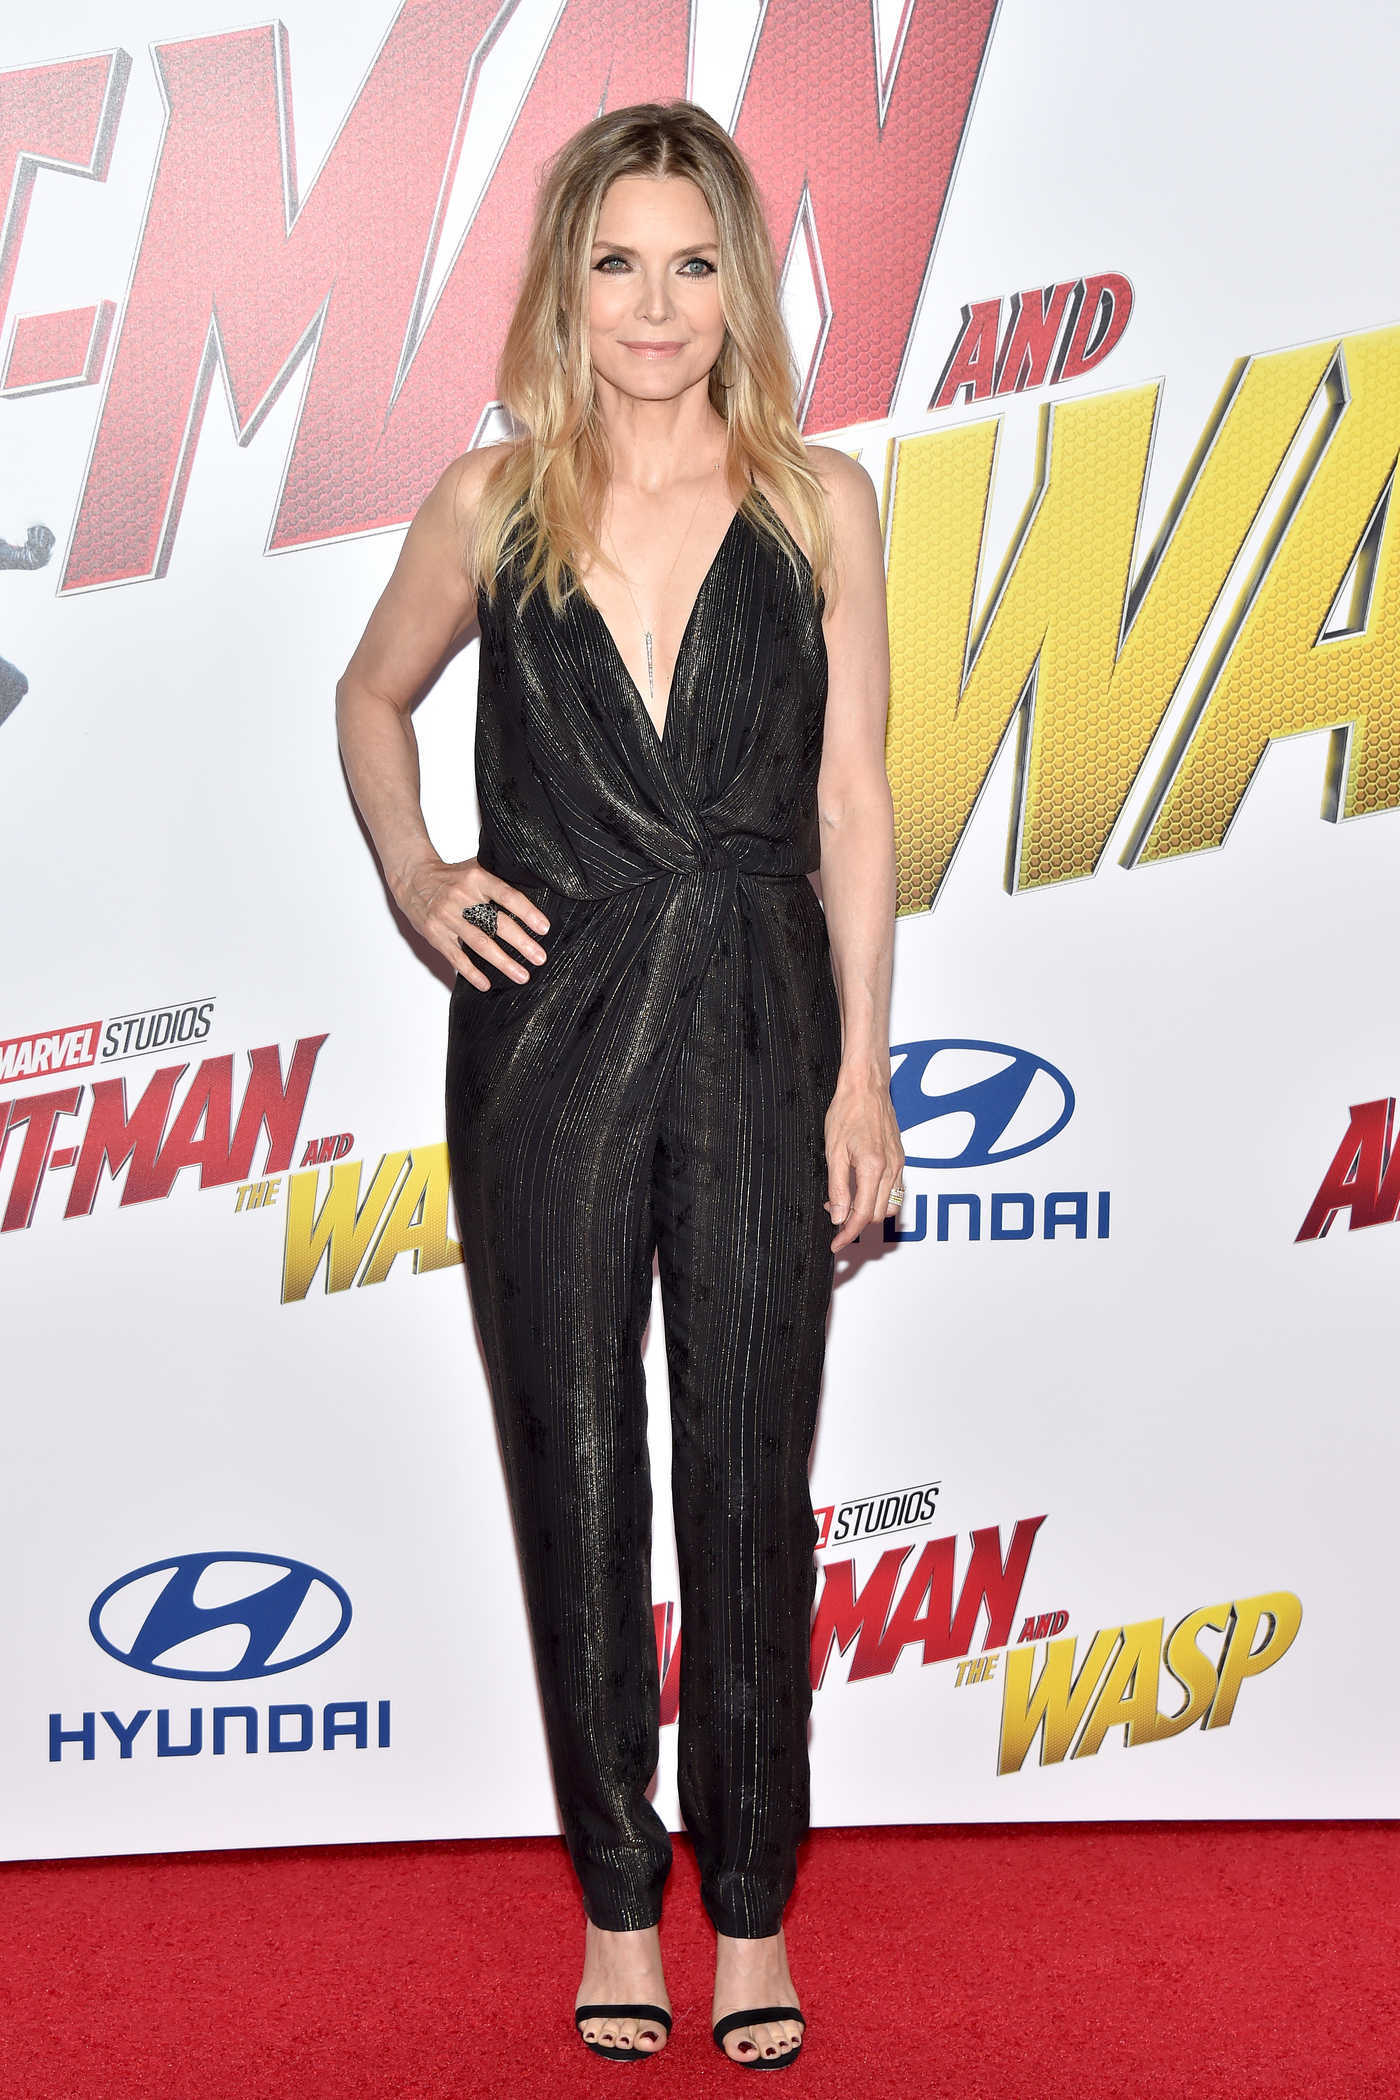 Michelle Pfeiffer at Marvel's Ant-Man and the Wasp Premiere in Los Angeles 06/25/2018